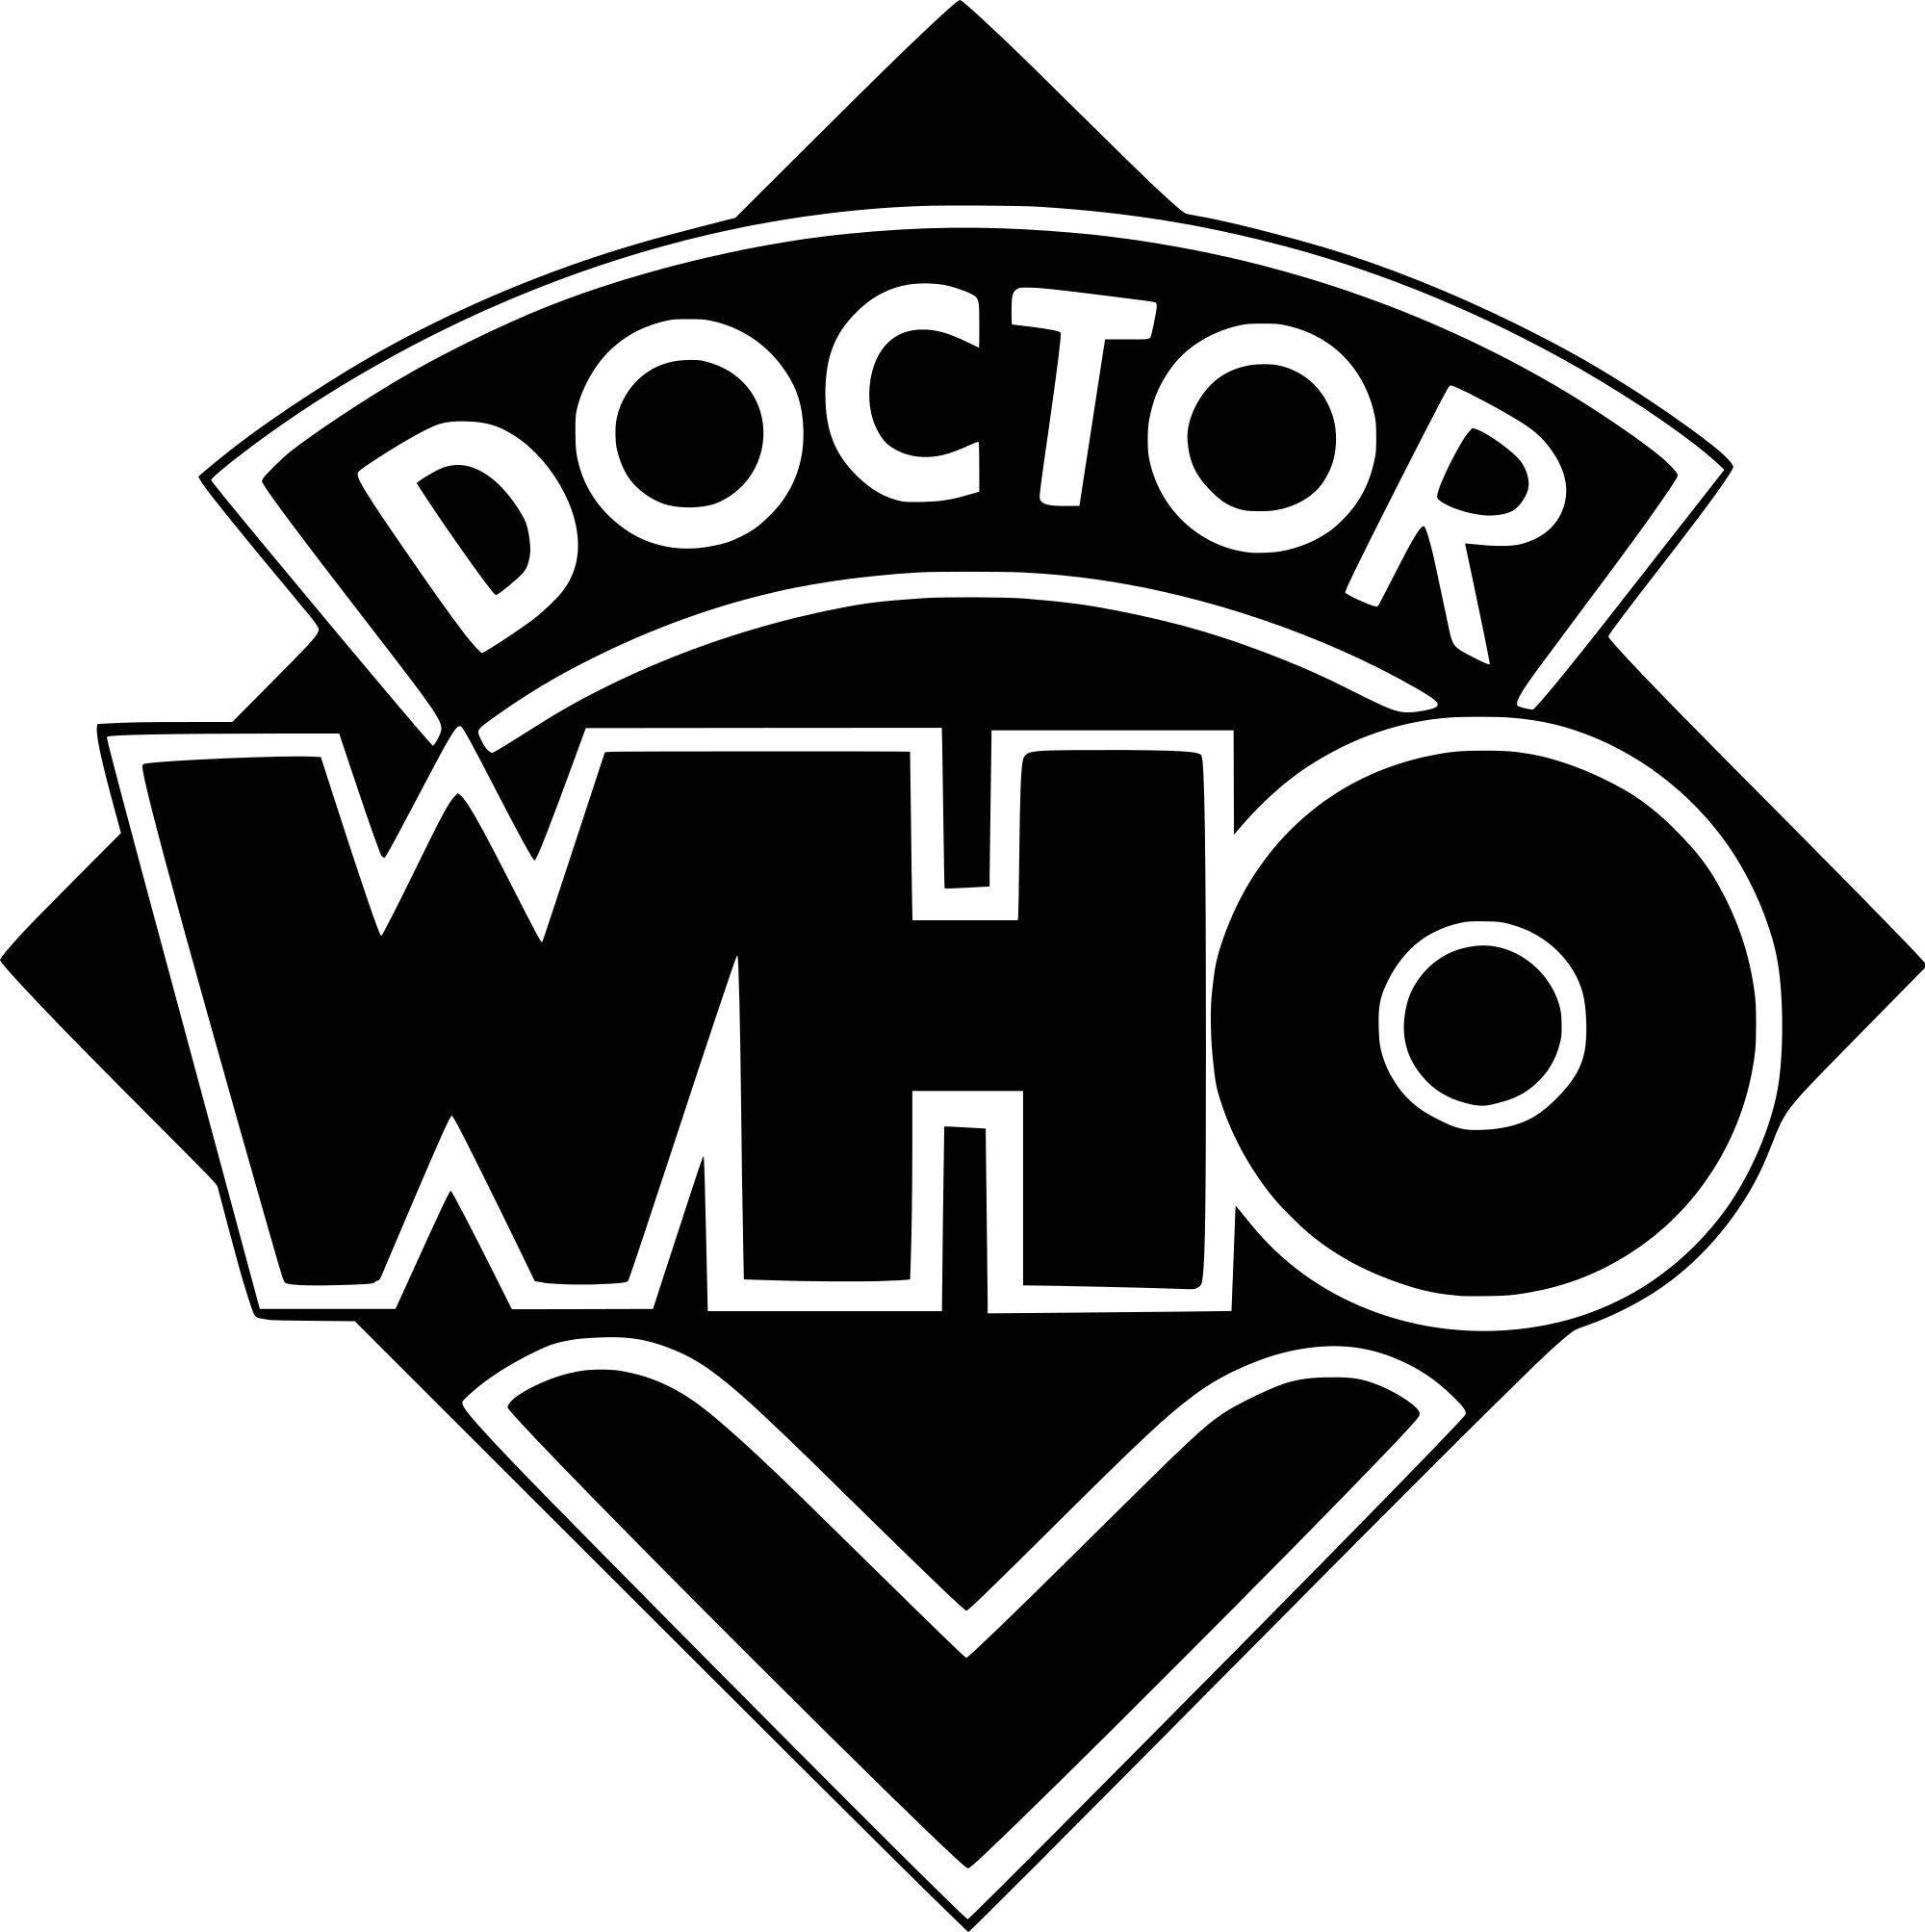 2000px Doctor Who Logo 1973 1980 Svg Png 2 000 2 007 Pixels Vinyl Decal Stickers Diamond Decals Doctor Who Logo